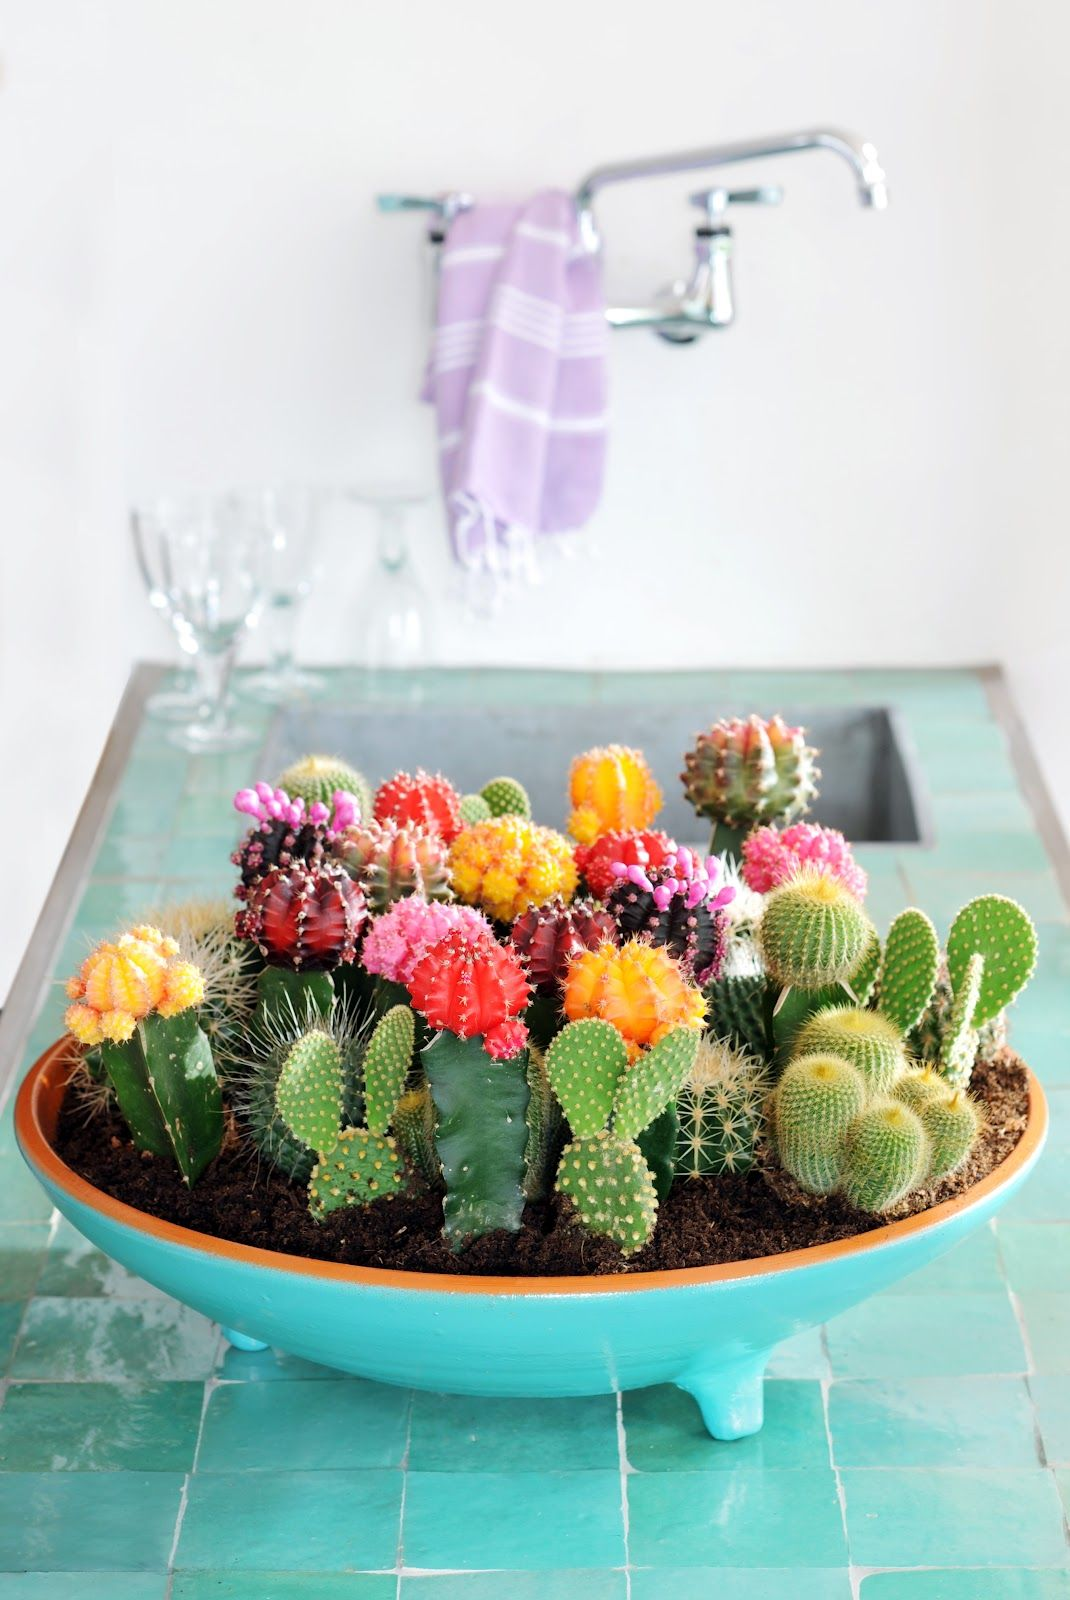 Lovely Cacti Bunch!